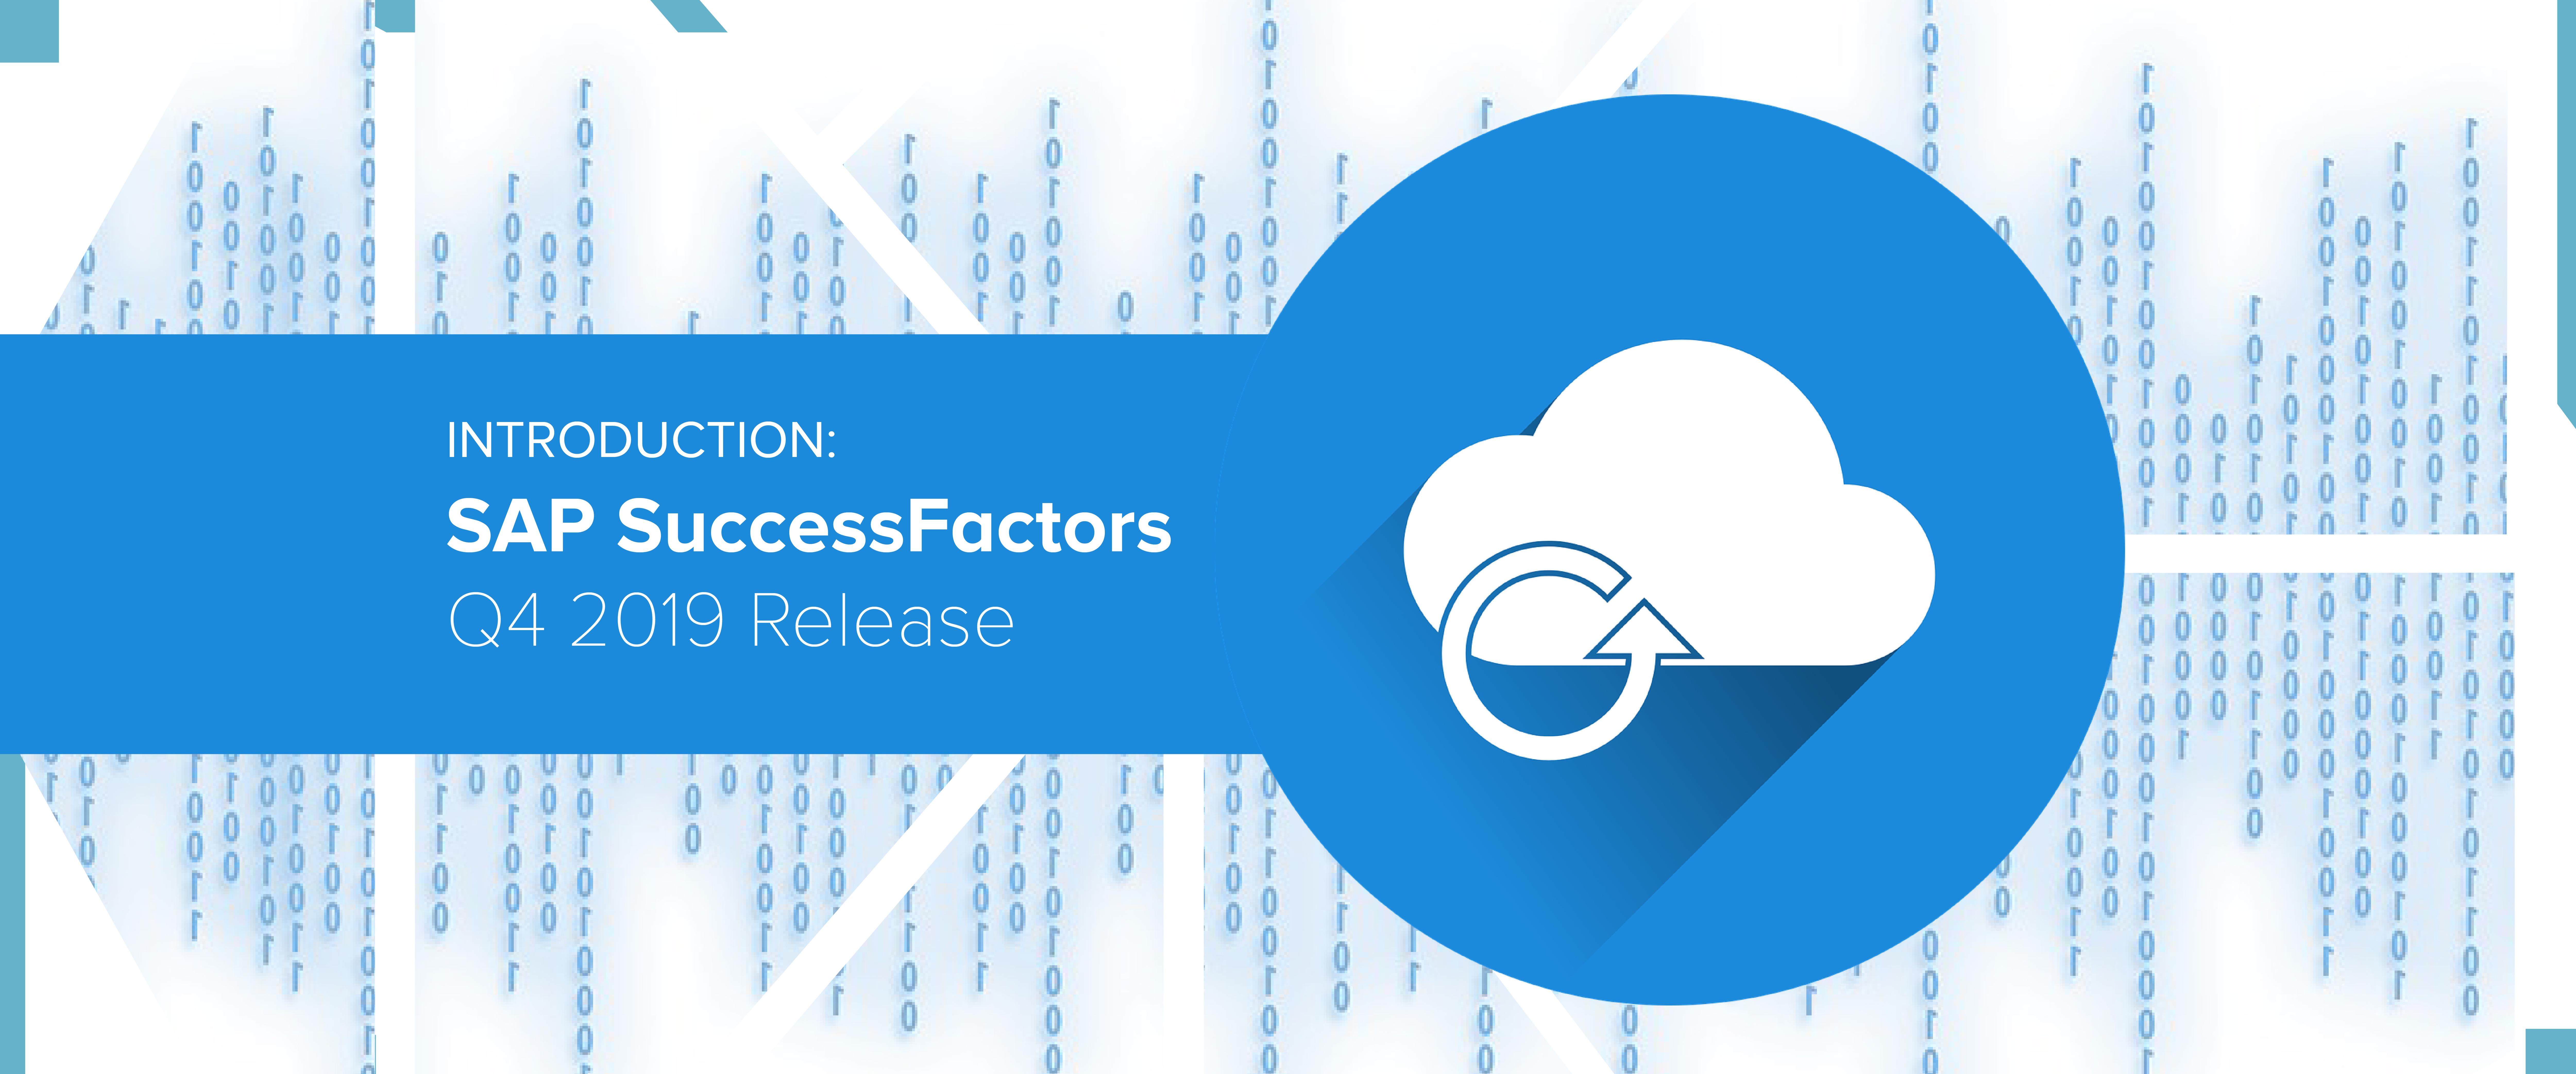 Introduction to the SuccessFactors Q4 2019 Release